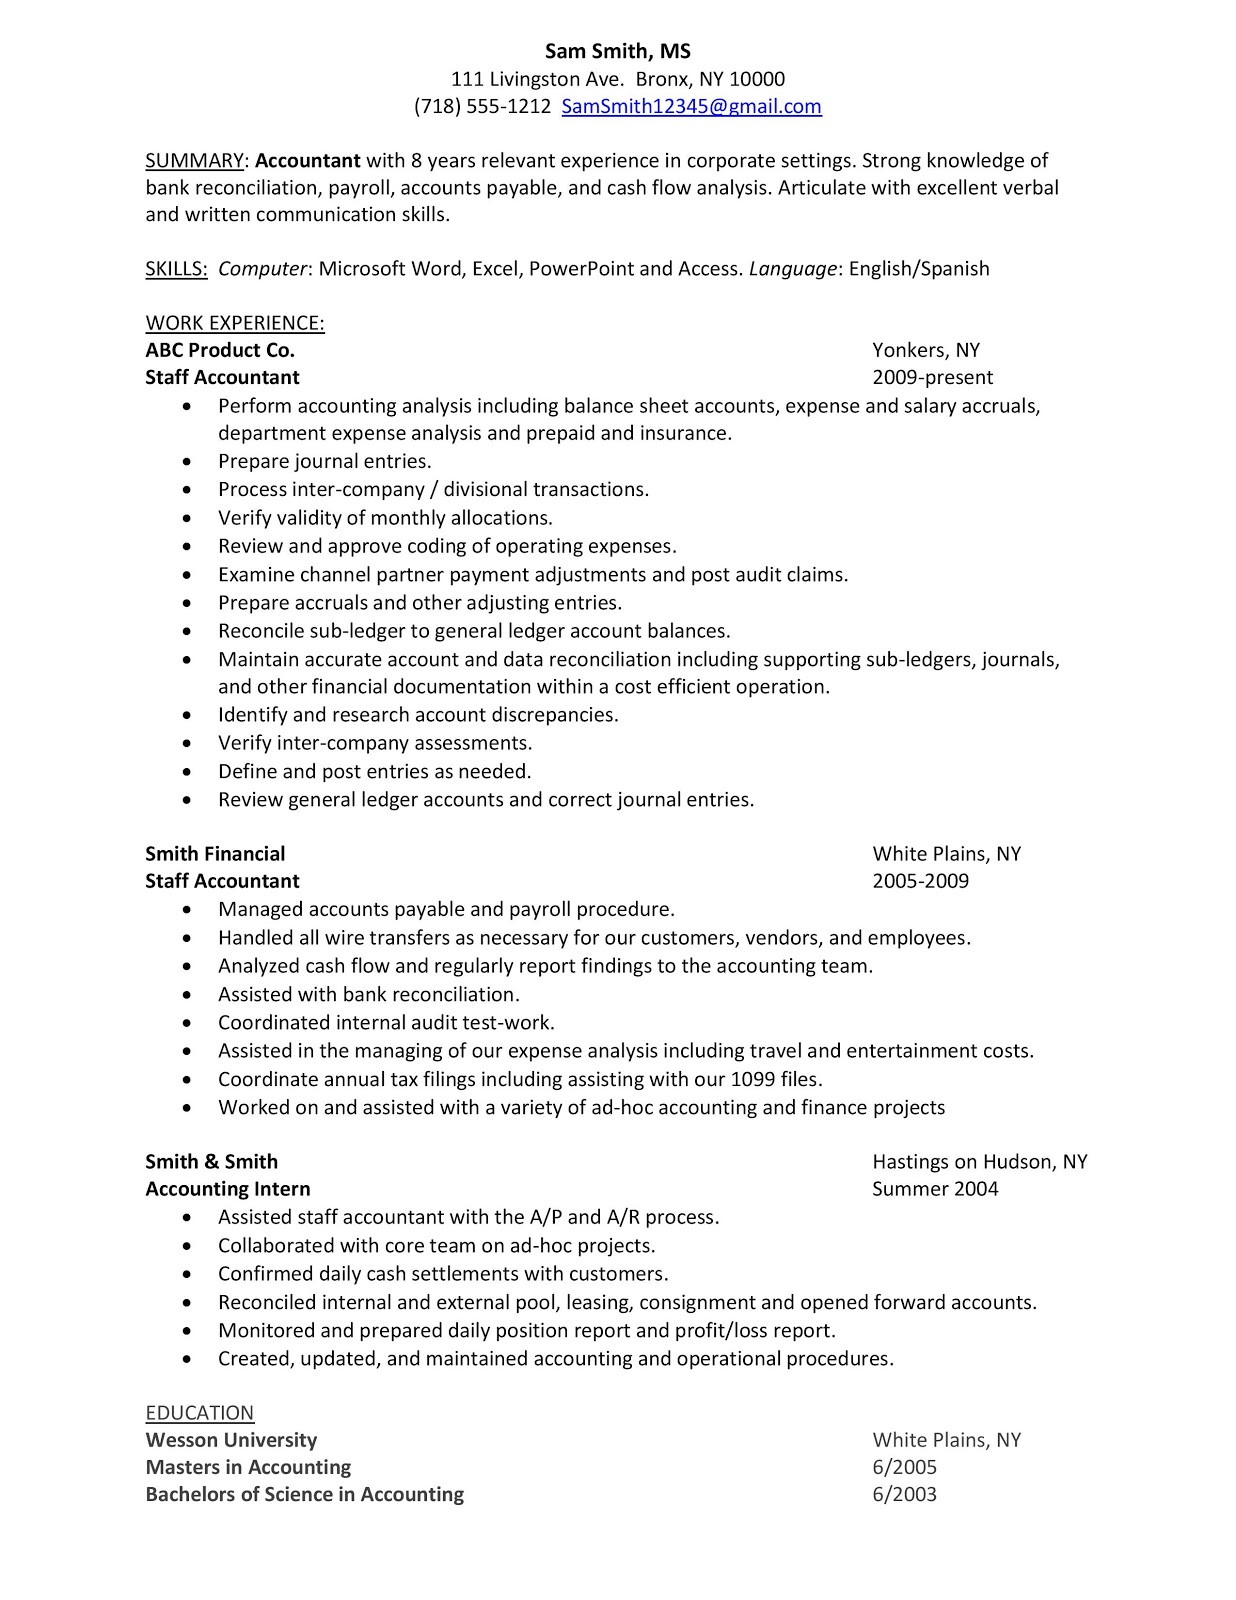 Big 4 Accounting Resume. Newsound.co